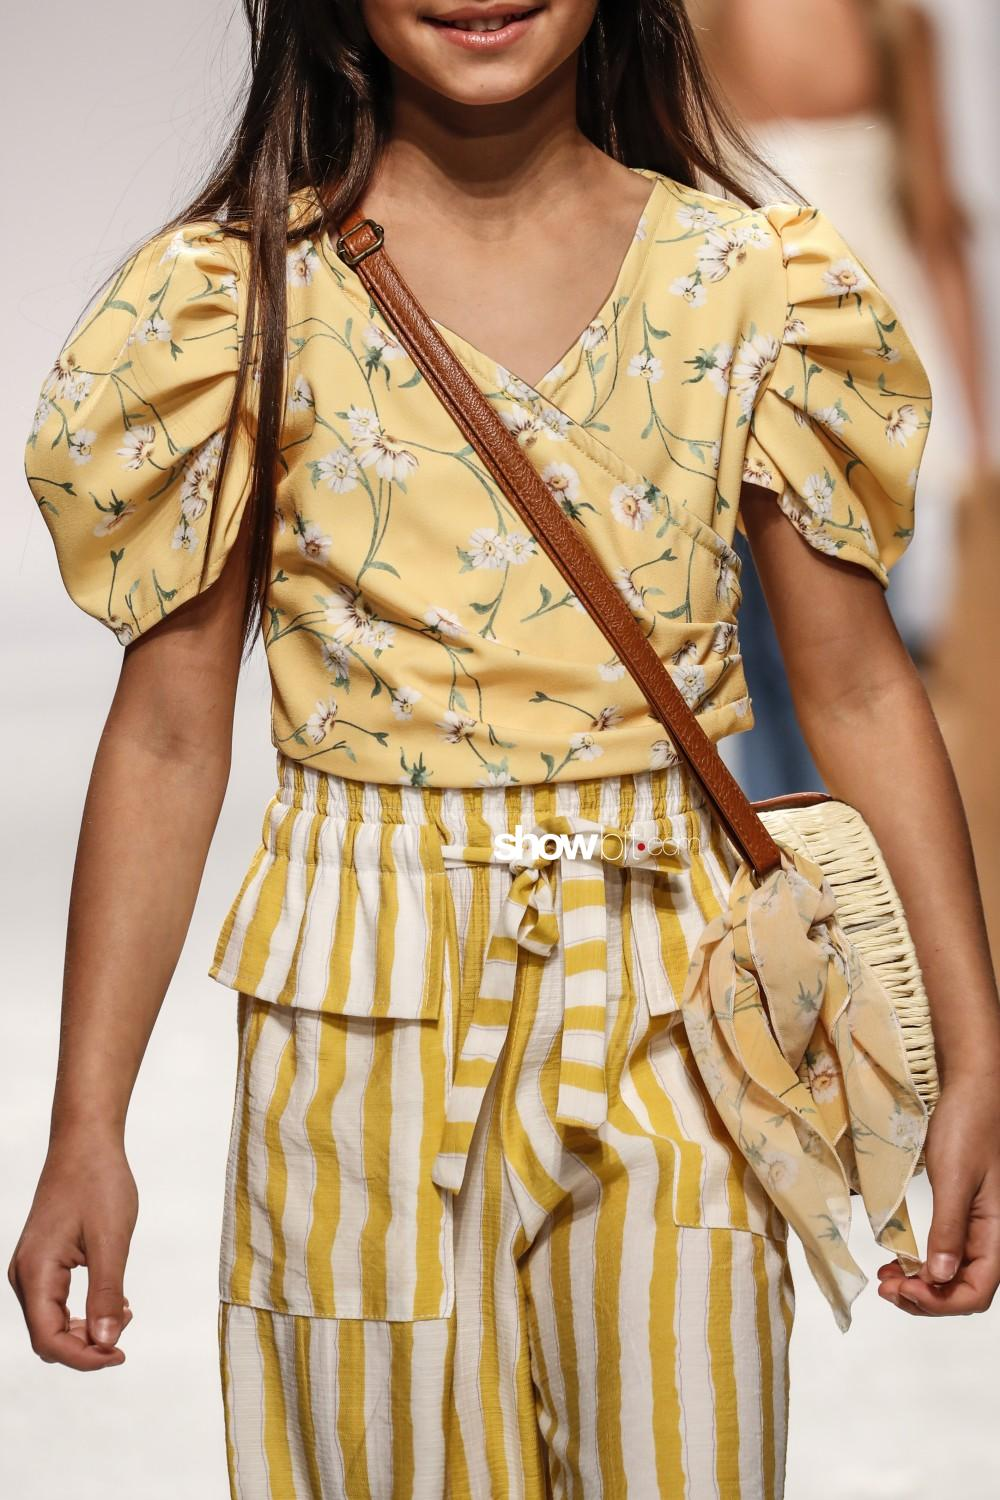 Manila Grace close-up Kids Spring Summer 2020 Firenze